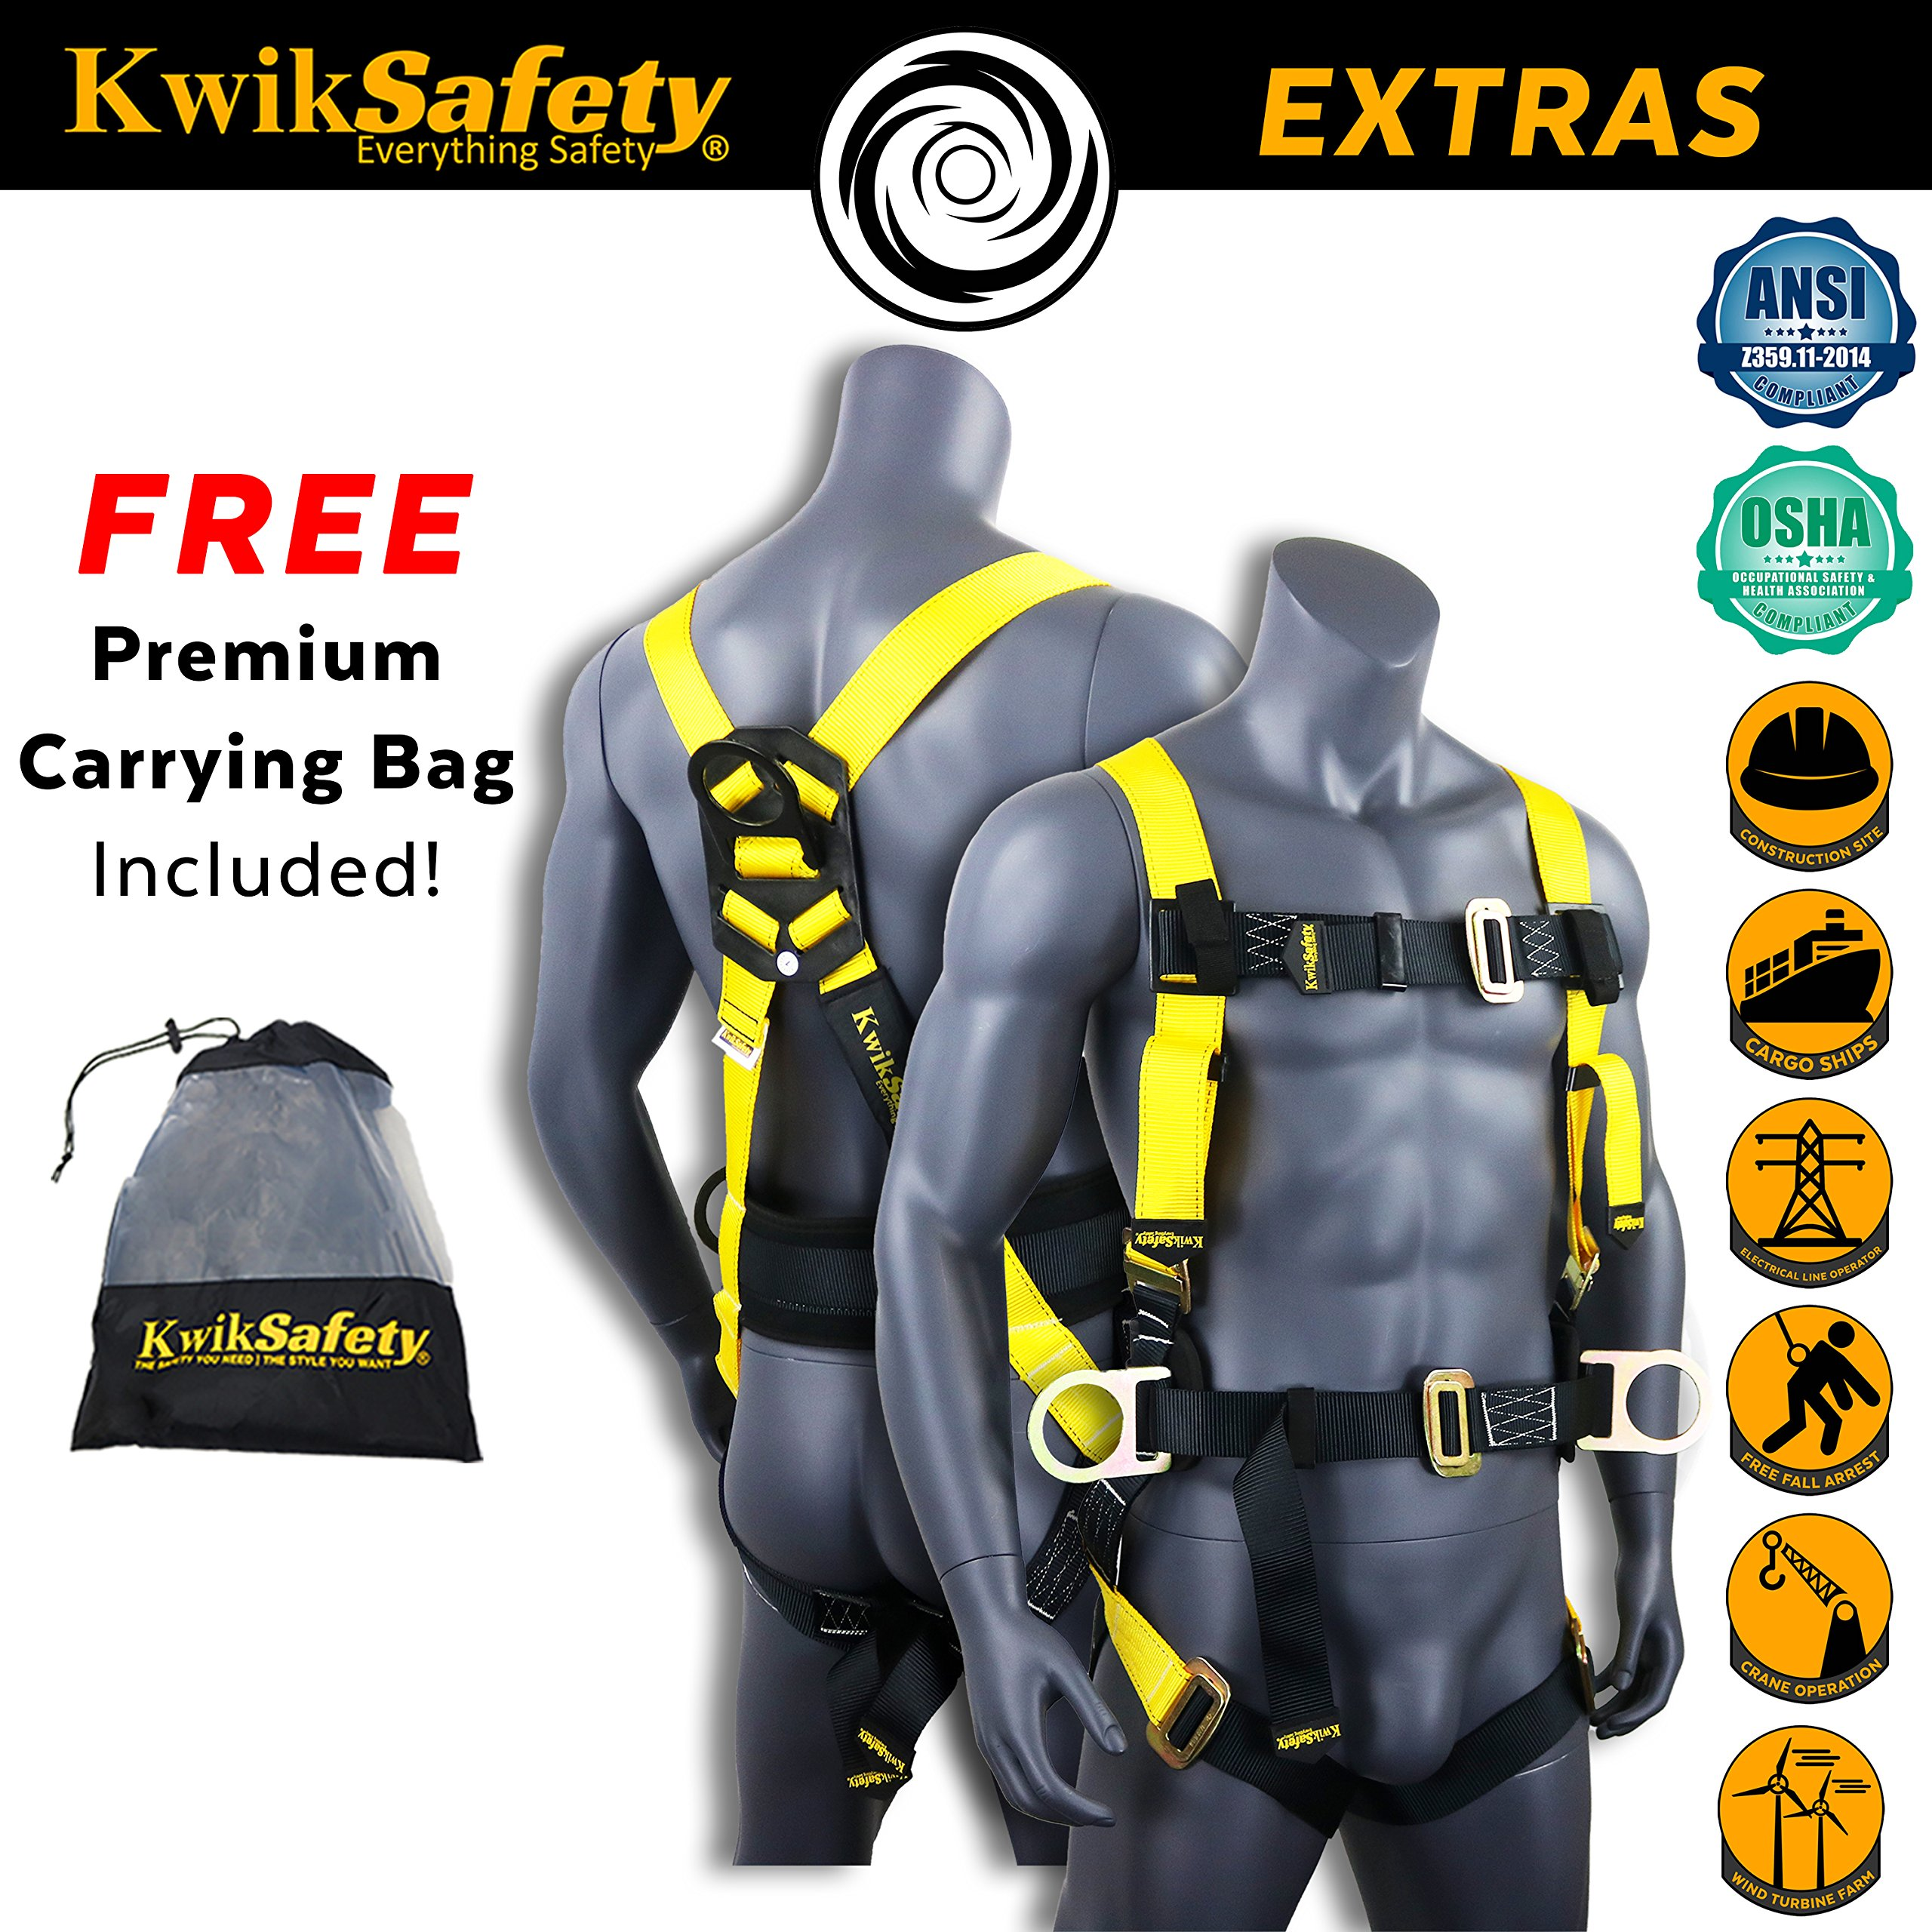 KwikSafety HURRICANE | OSHA ANSI Fall Protection Full Body Safety Harness w/Back Support | Personal Protective Equipment | Dorsal Ring Side D-Rings | Universal Construction Industrial Roofing Tool by KwikSafety (Image #4)